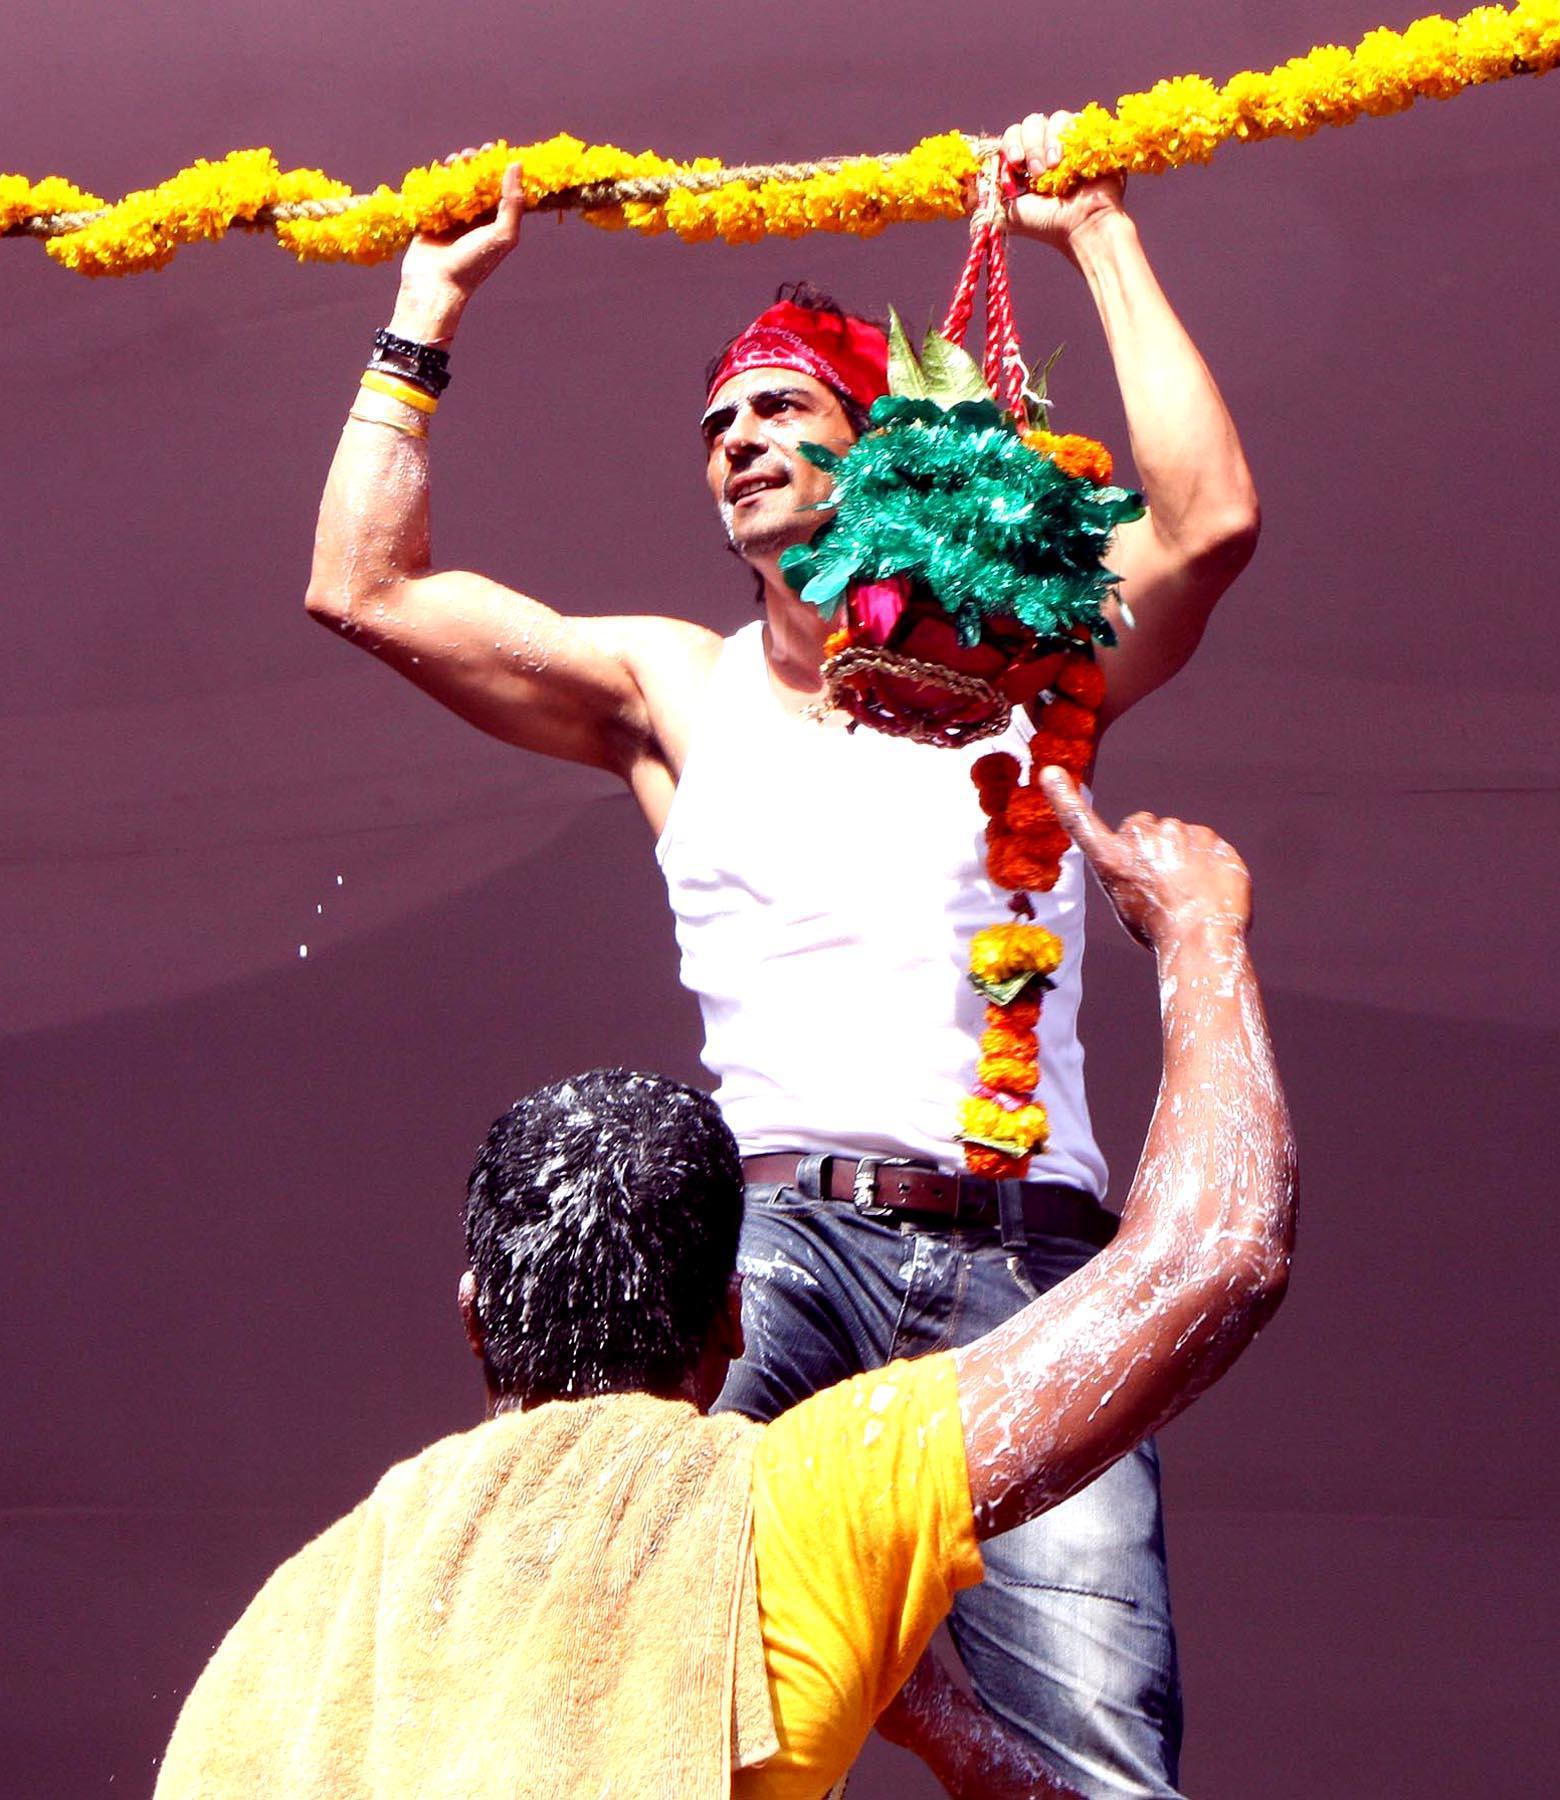 Bollywood actor Arjun Rampal participates in Dahi Handi ceremony. (Image: Newshence.com)